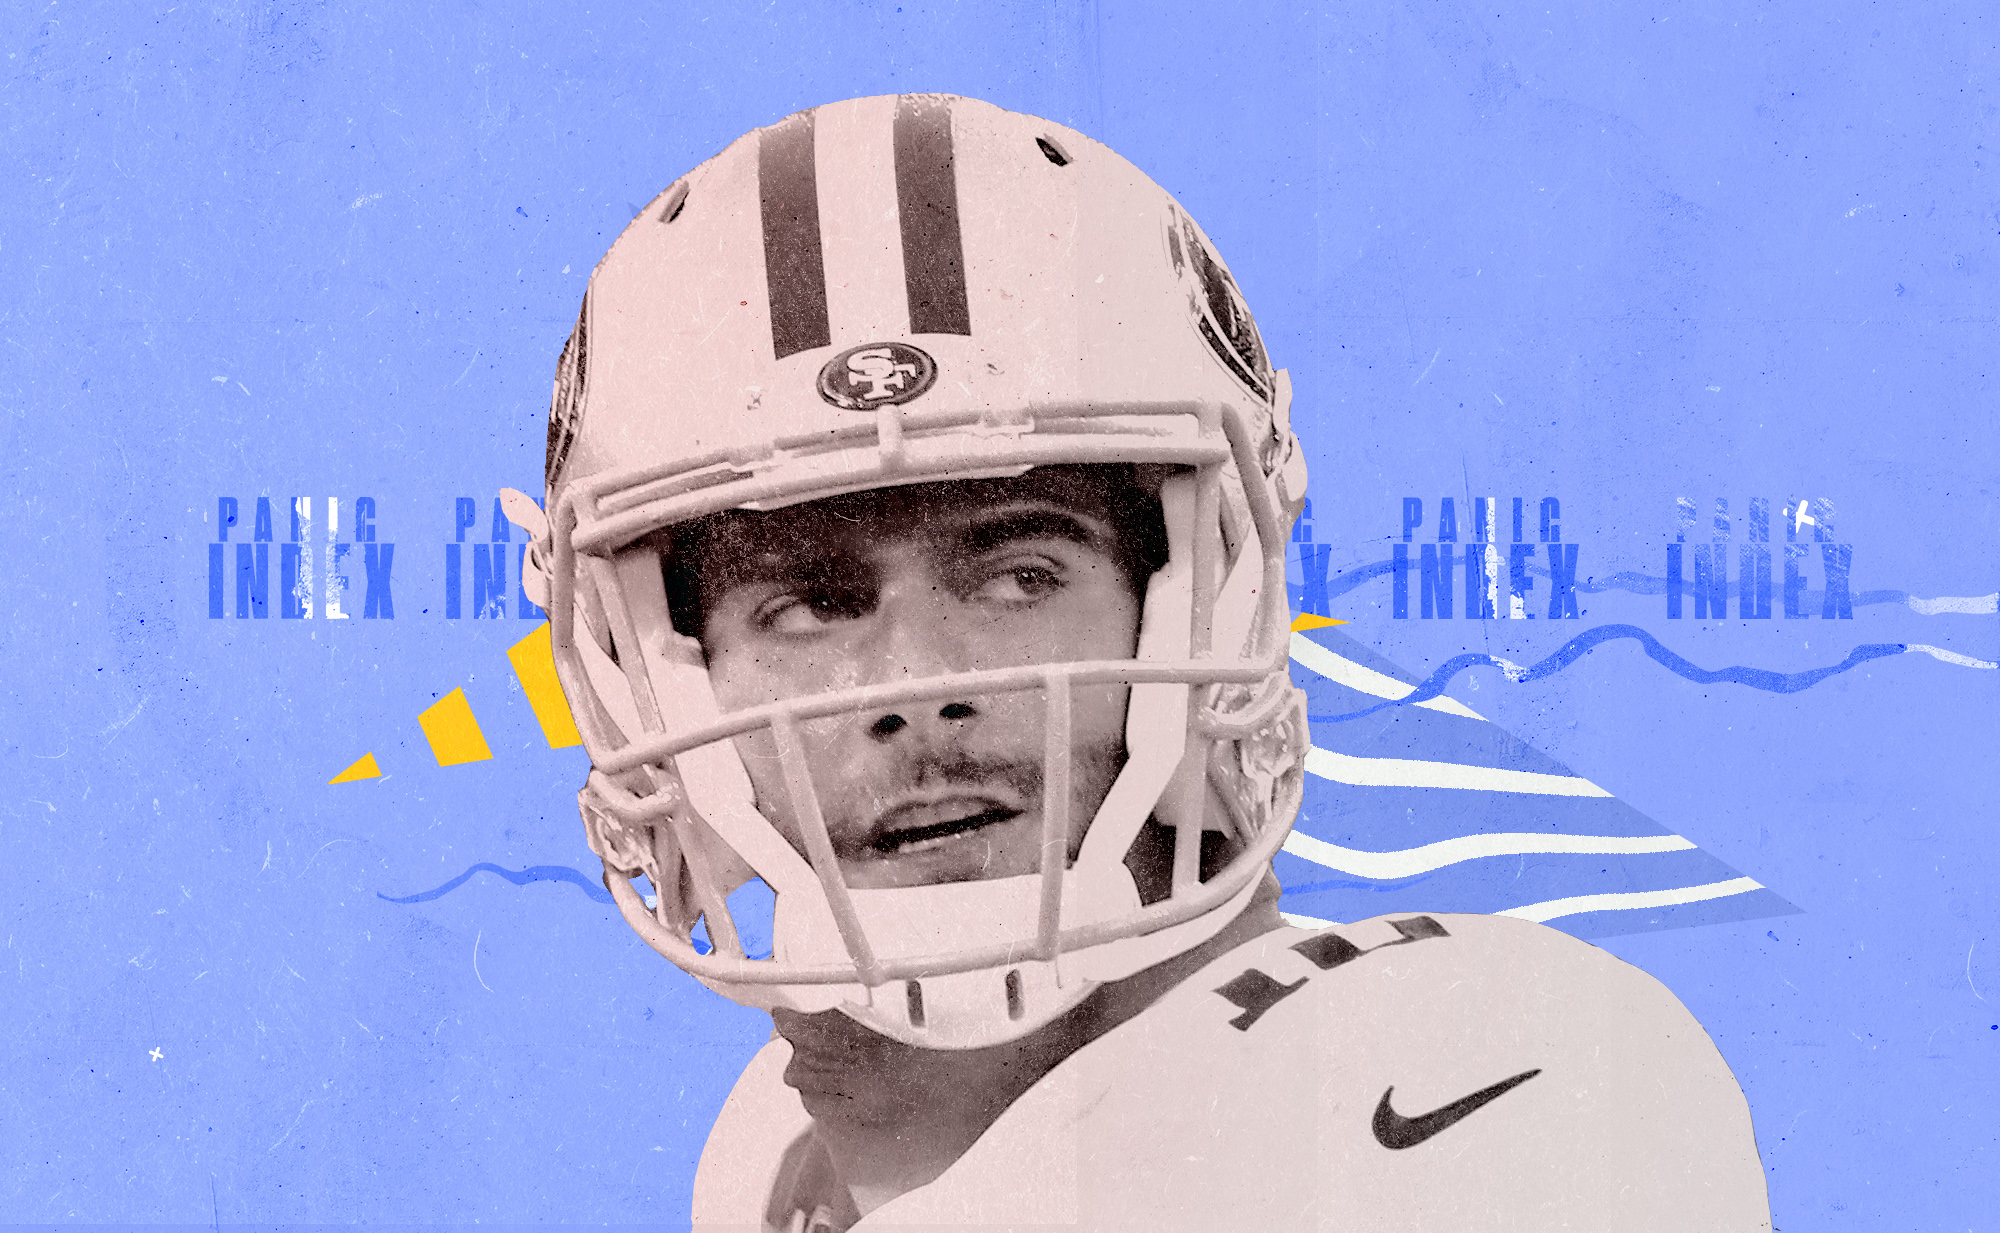 49ers QB Jimmy Garoppolo glances to the side, superimposed on a blue, yellow, and white background with the words PANIC INDEX